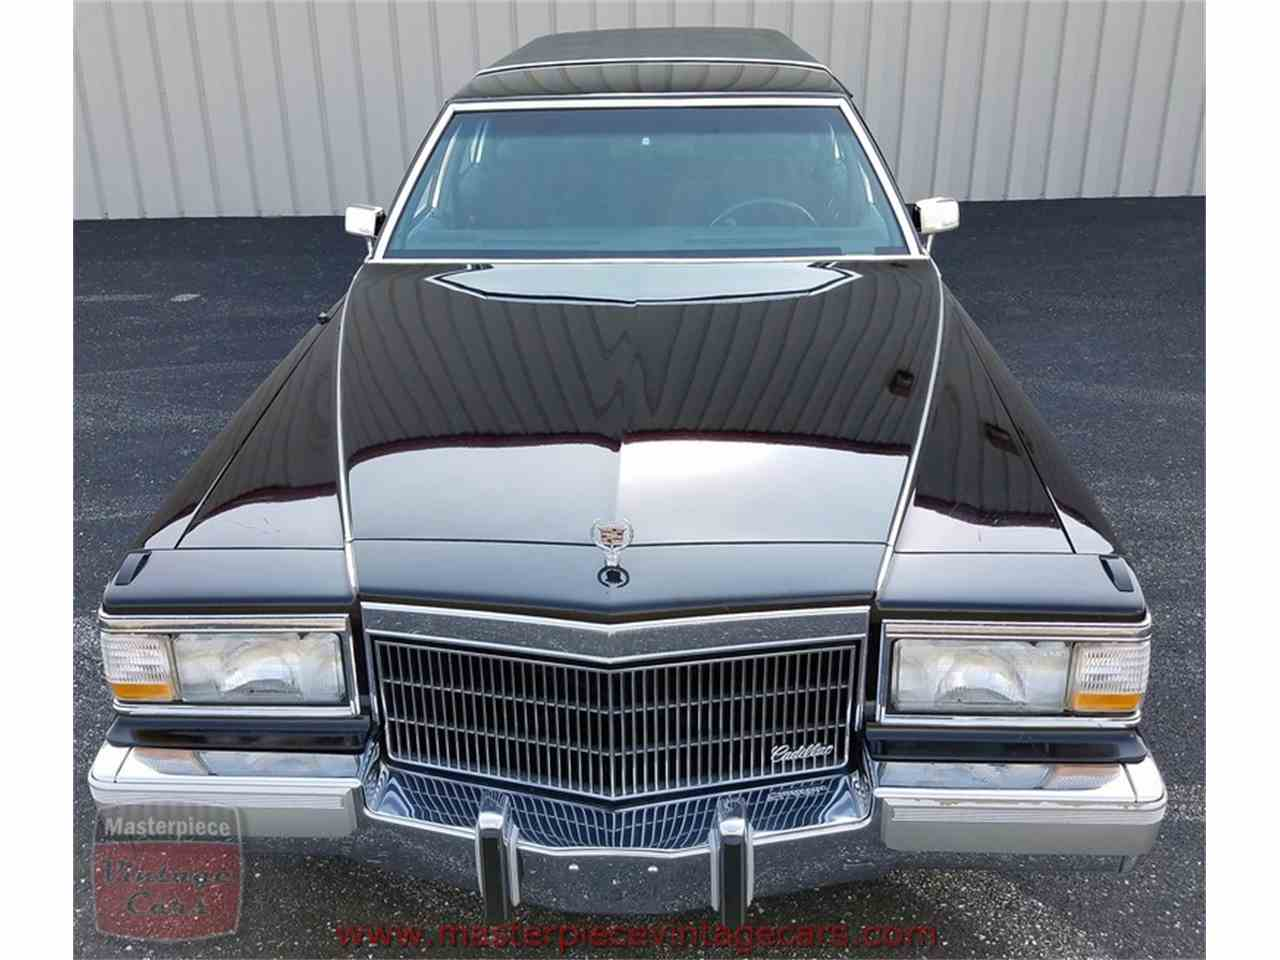 Large Picture of '91 Limousine - $9,950.00 Offered by Masterpiece Vintage Cars - L3S4